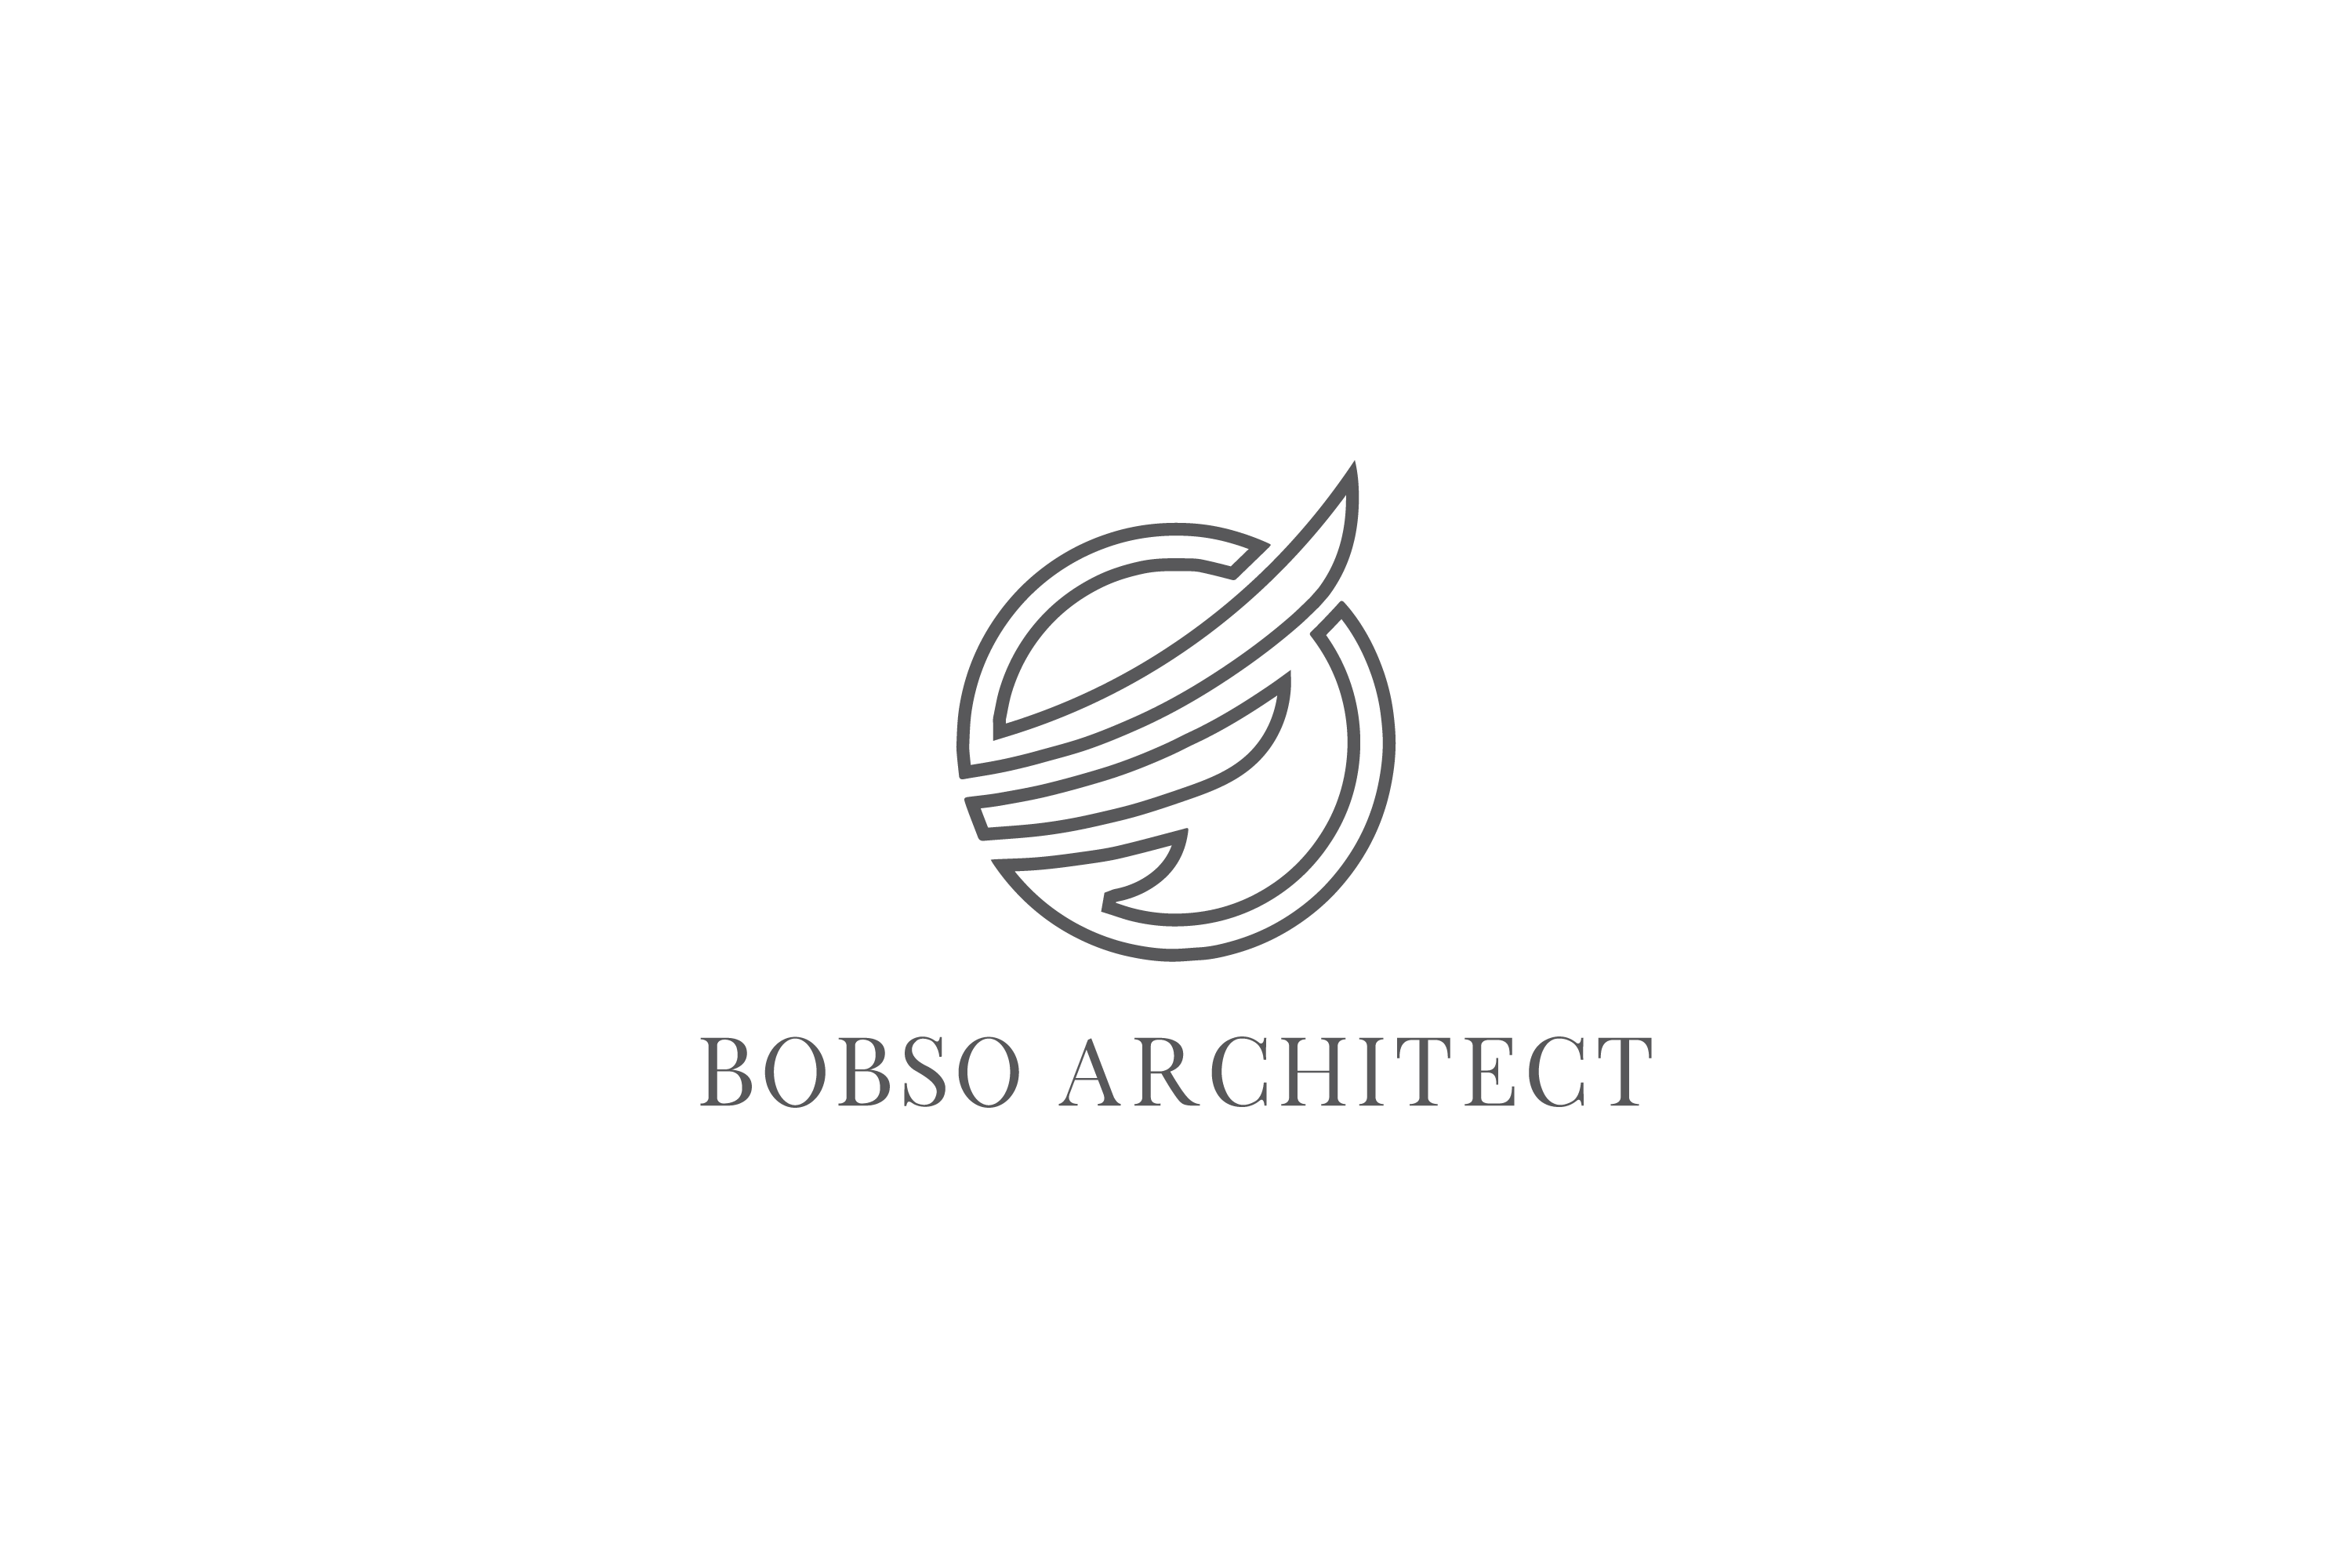 Bobso Architect